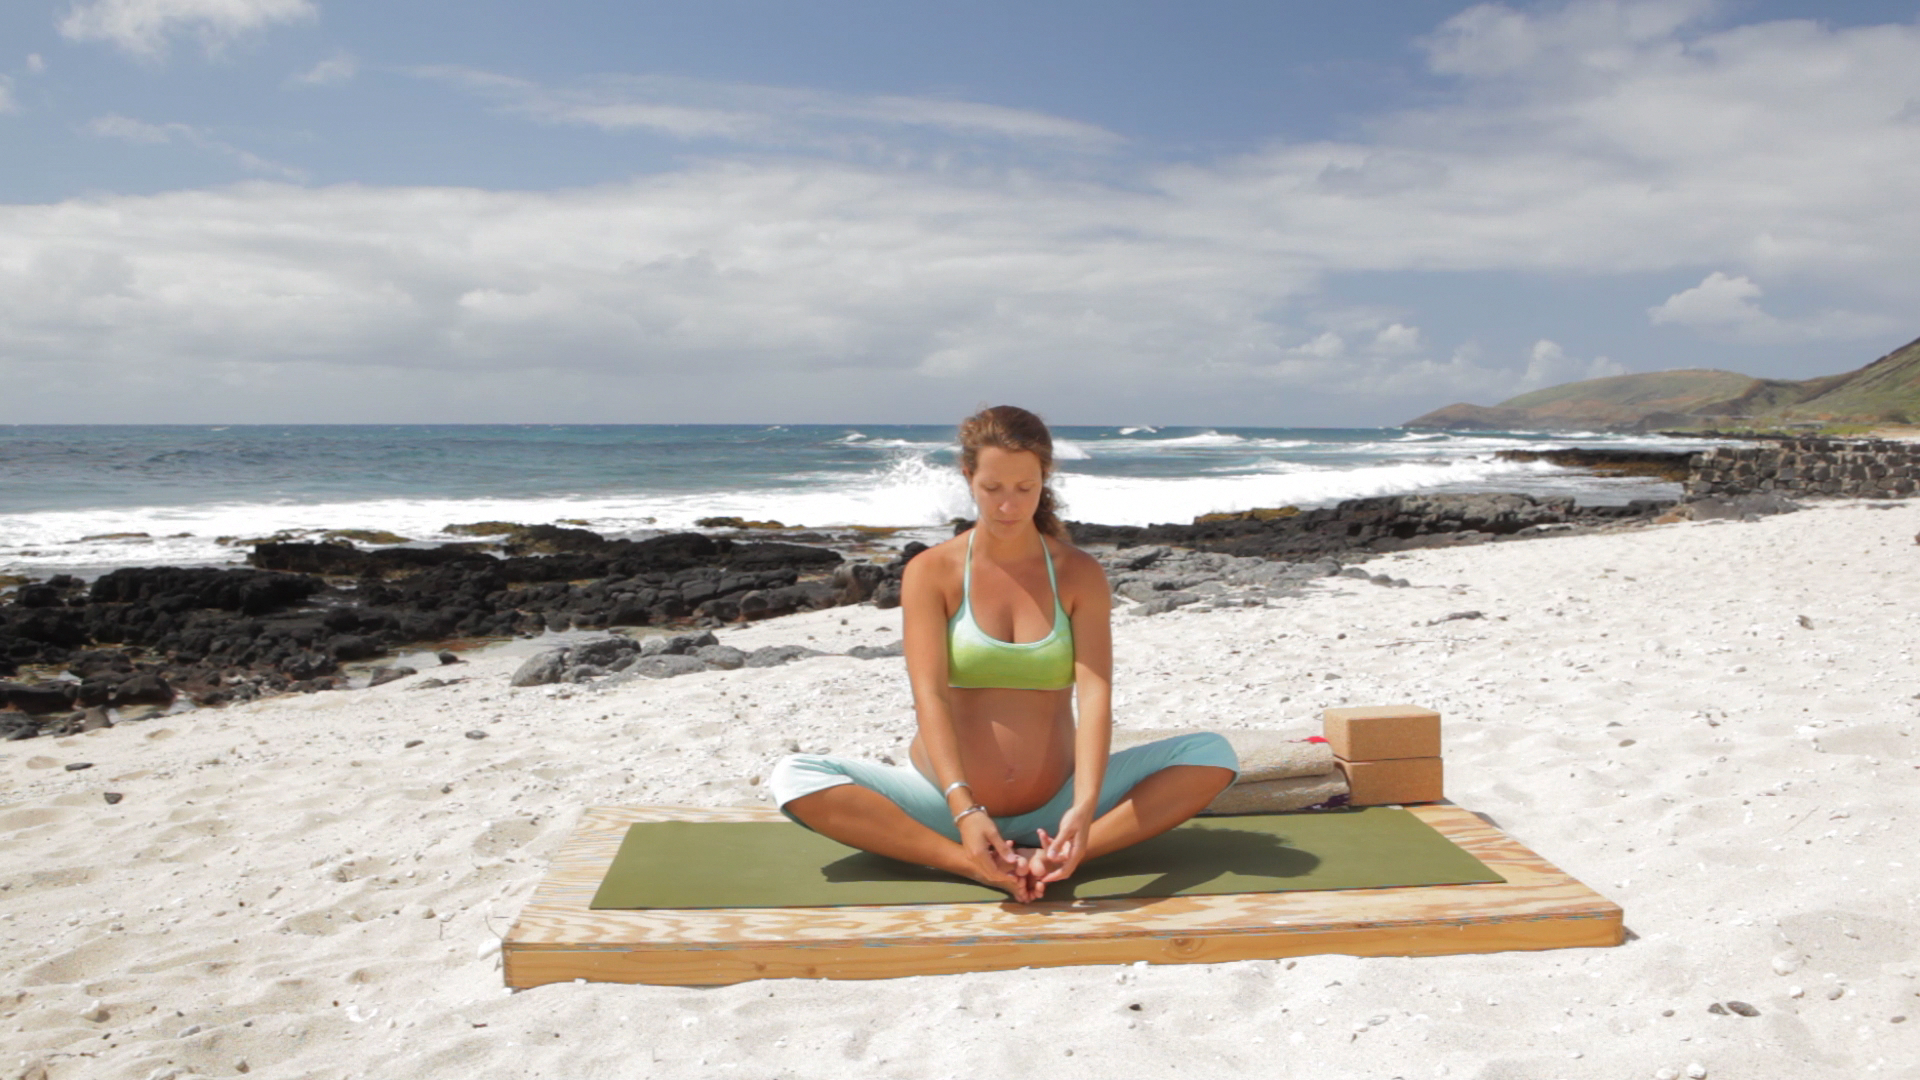 6. The Butterfly Pose - The BestYogaPosesforPregnantWomen